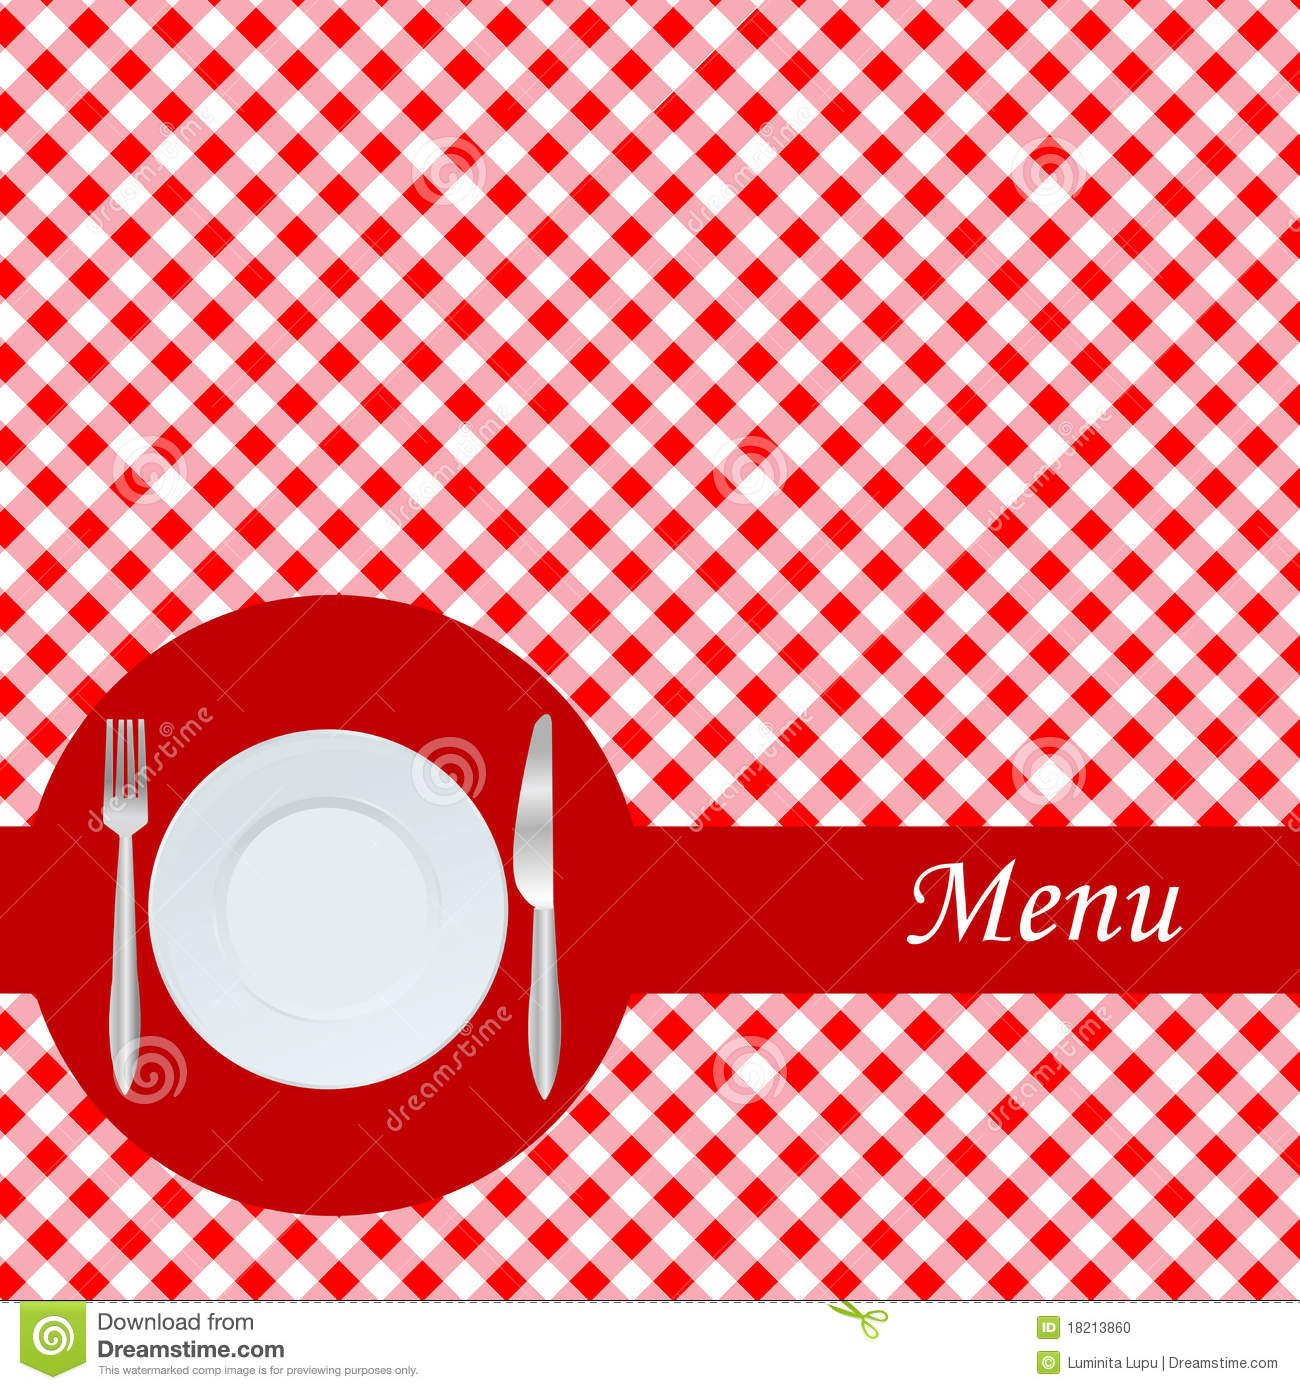 Knife And Fork Plate Template